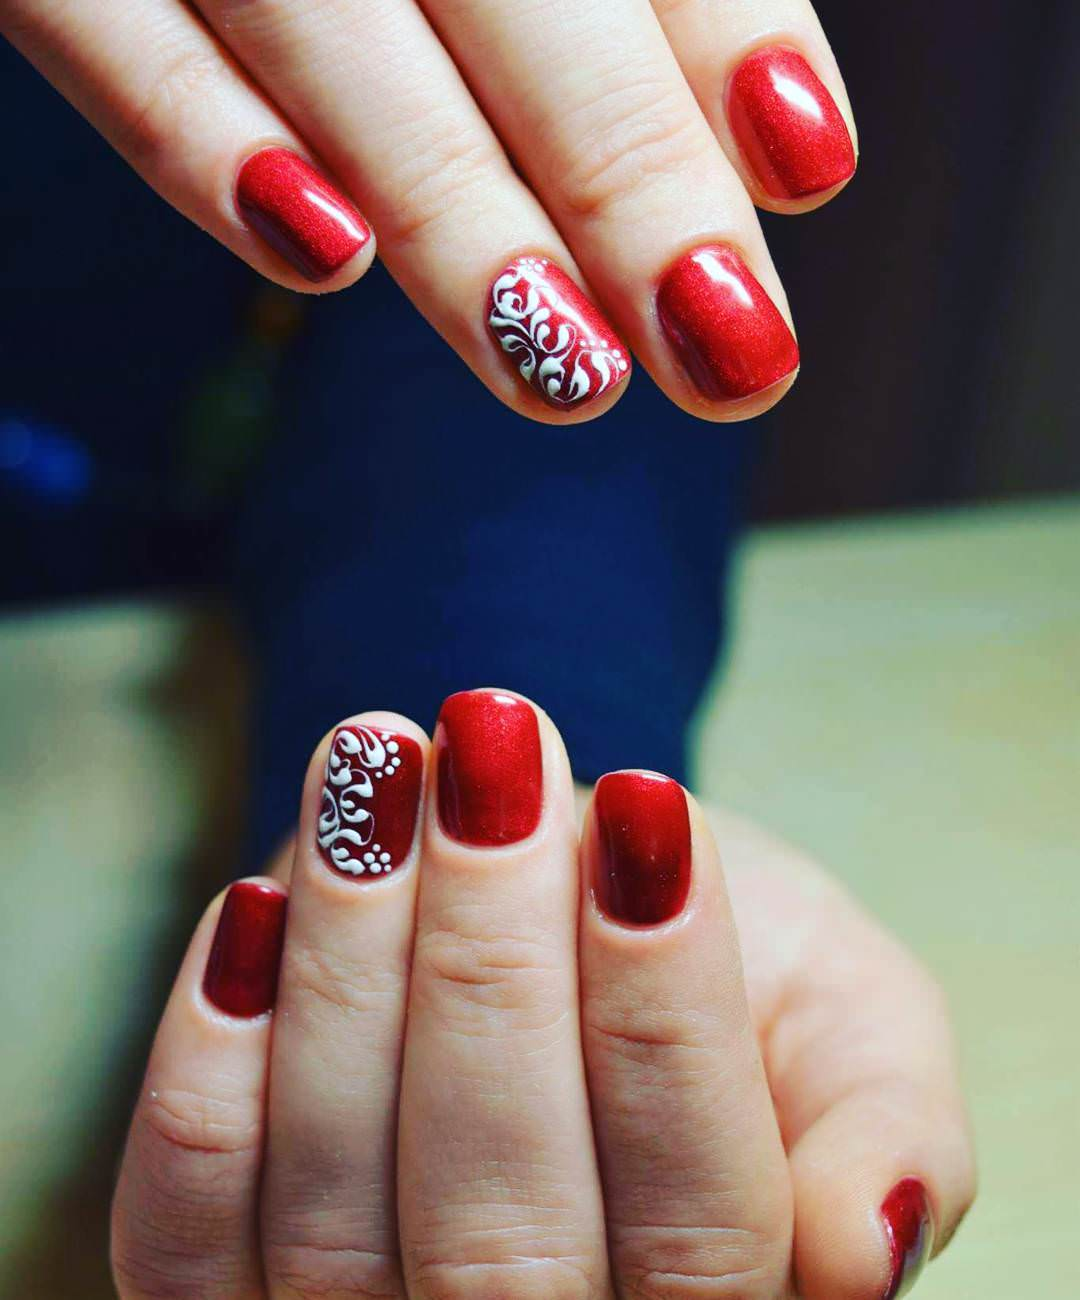 Pretty Red Nail Design For Short Square Nails - 29+ Red Acrylic Nail Art Designs , Ideas Design Trends - Premium